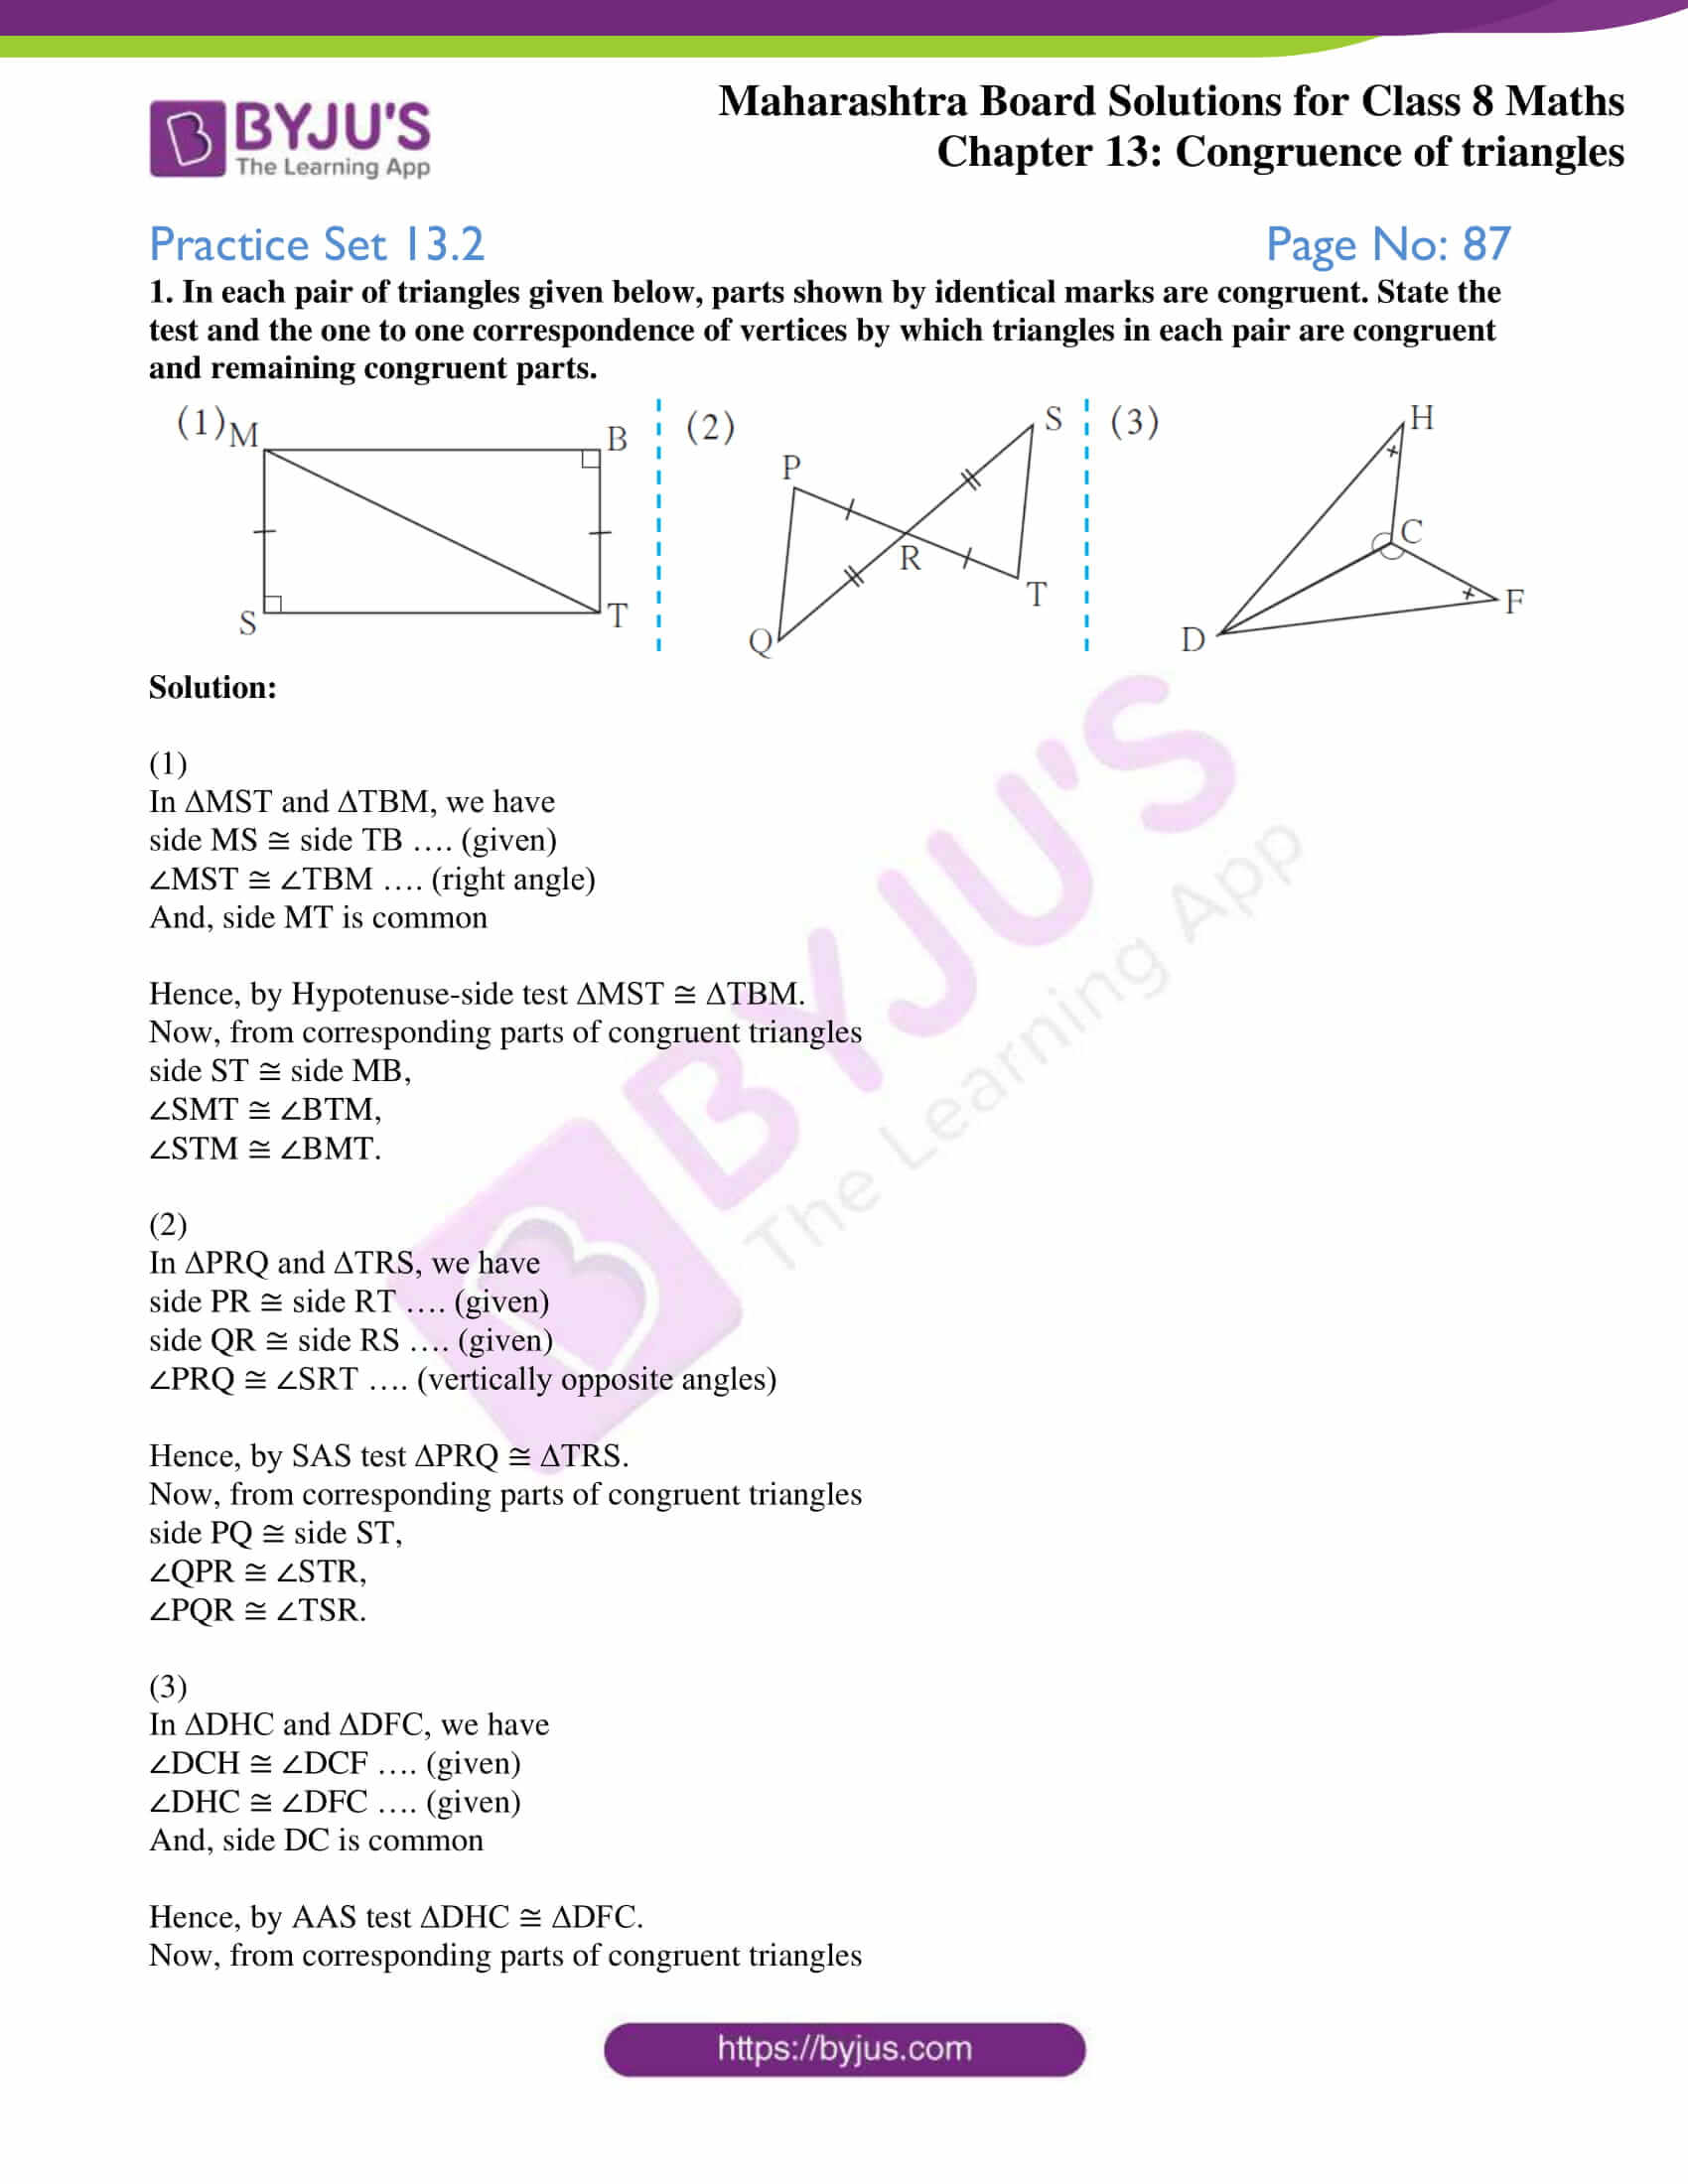 msbshse sol for class 8 maths chapter 13 2